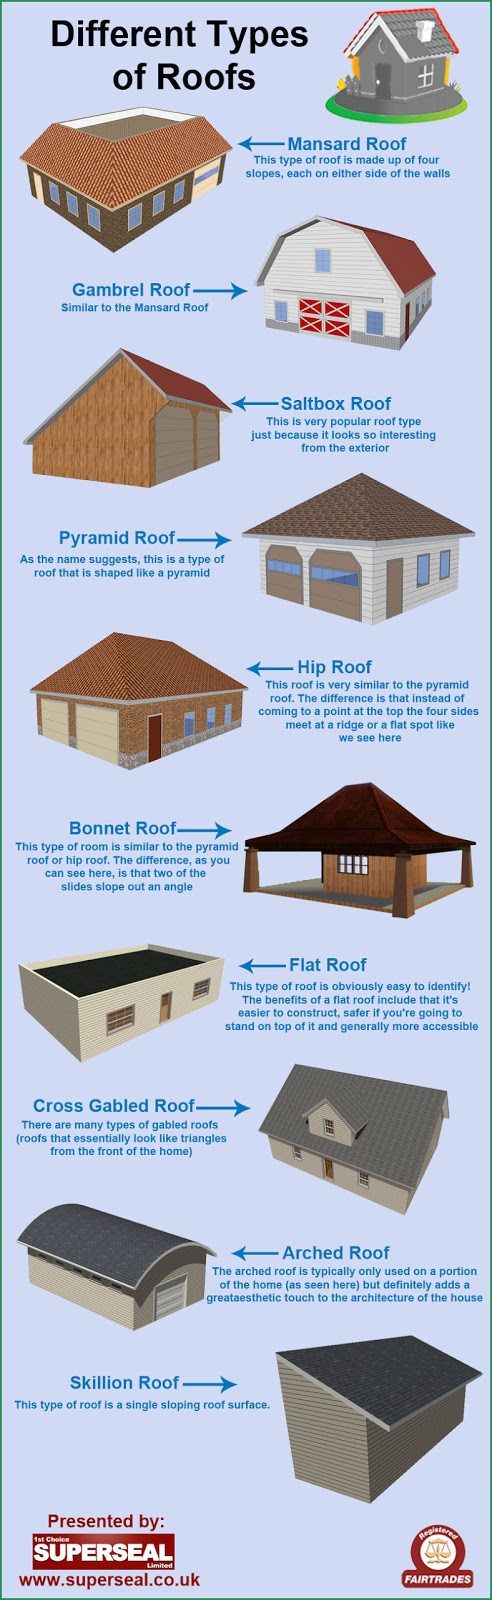 All seasons roofing in utah different types of roofs for Different types of roofs